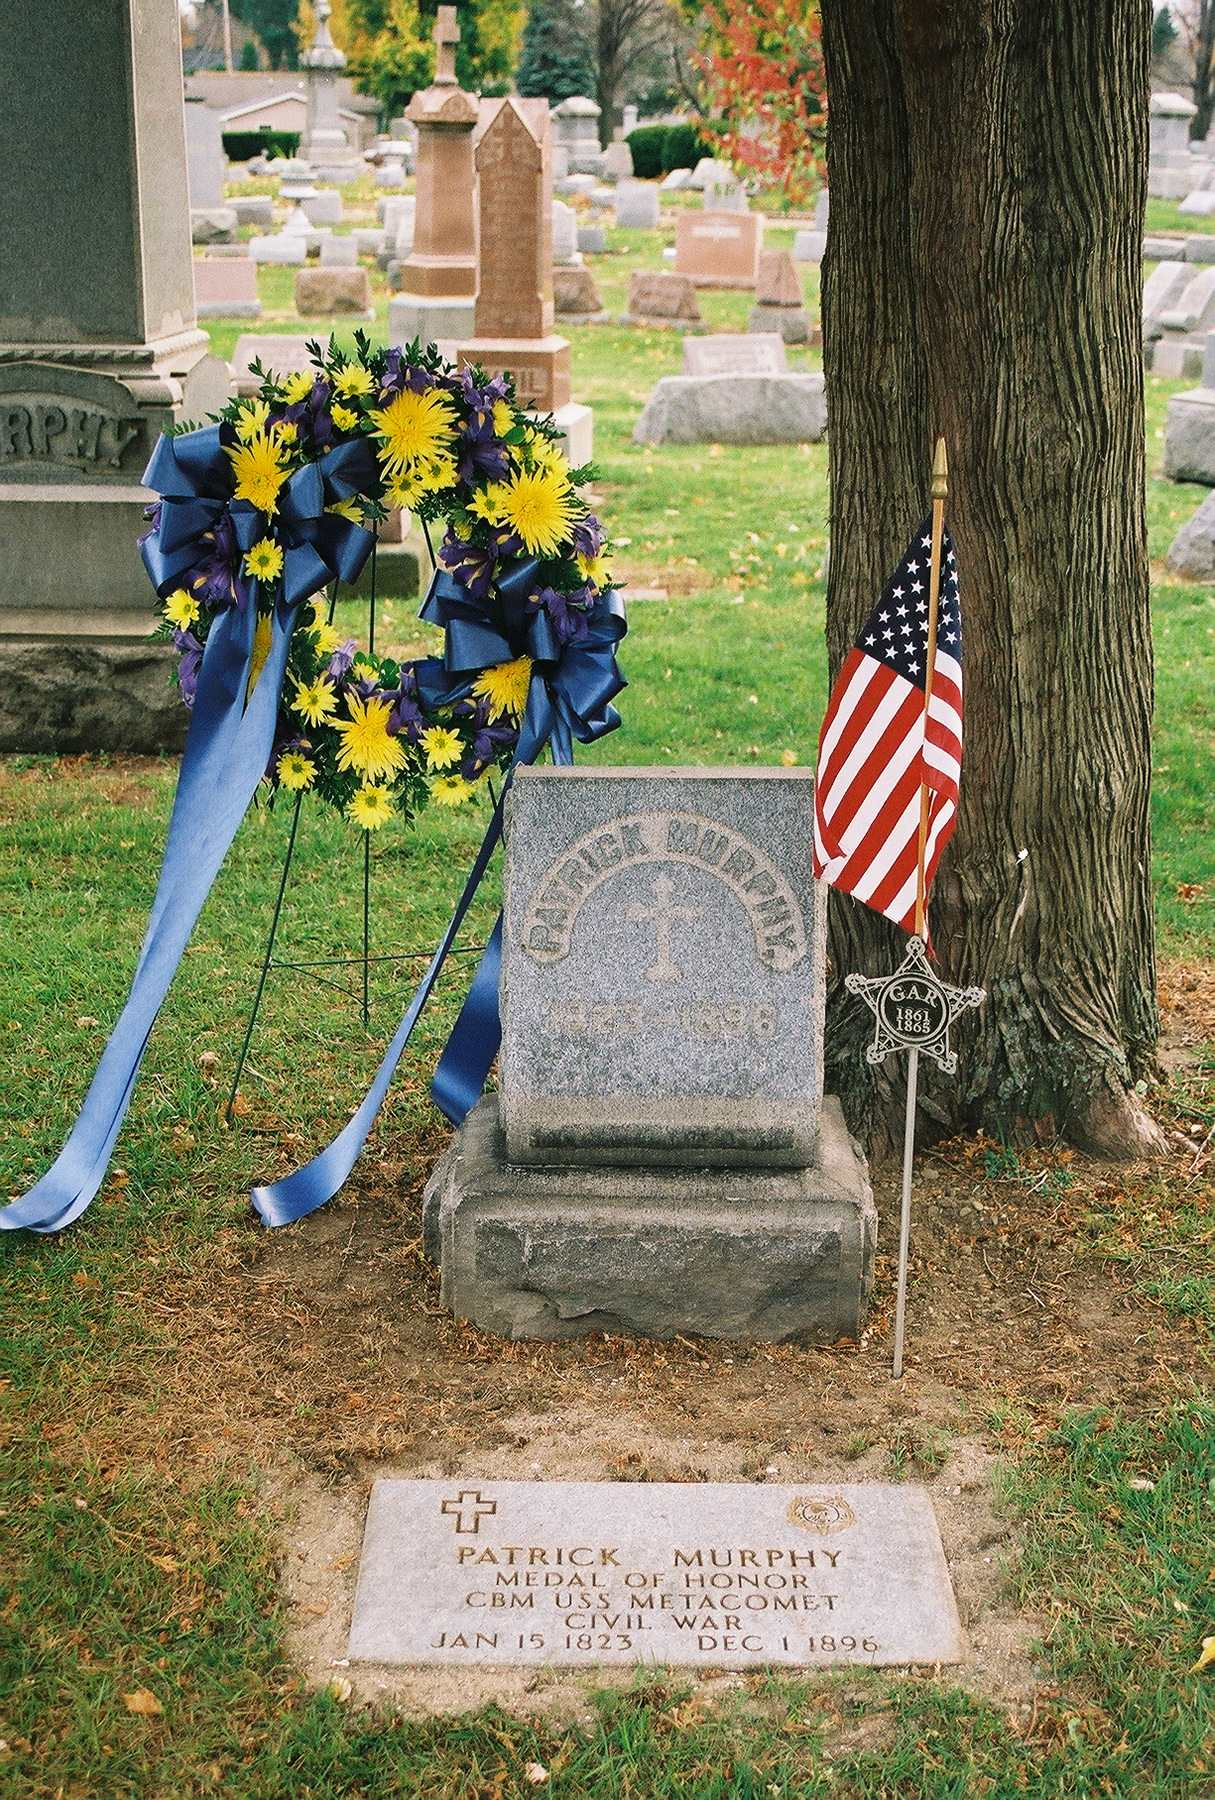 The grave of Patrick Murphy, Medal of Honor Recipient (Erie Maritime Museum)